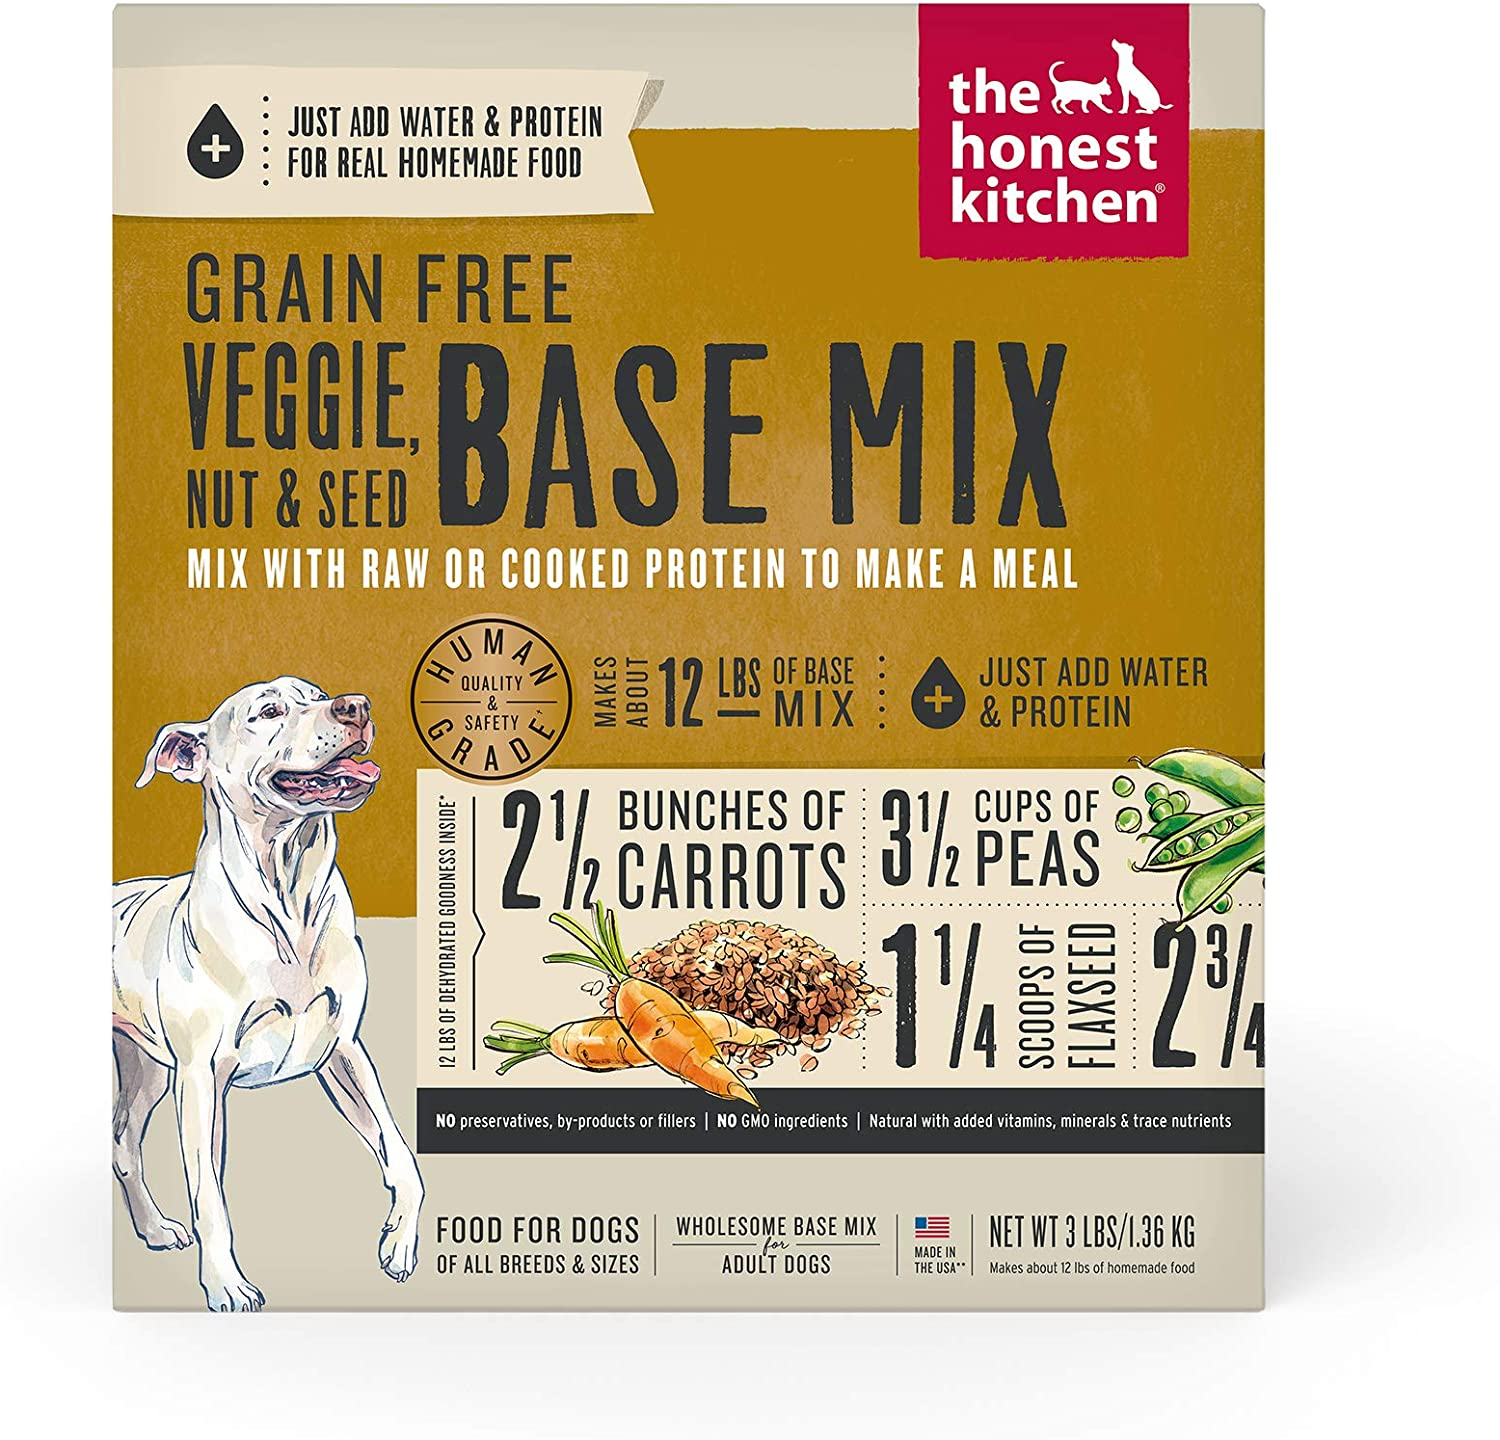 The Honest Kitchen Human Grade Dehydrated Wholesome Base Mix for Dogs - Organic Whole Grain and Grain Free Recipes